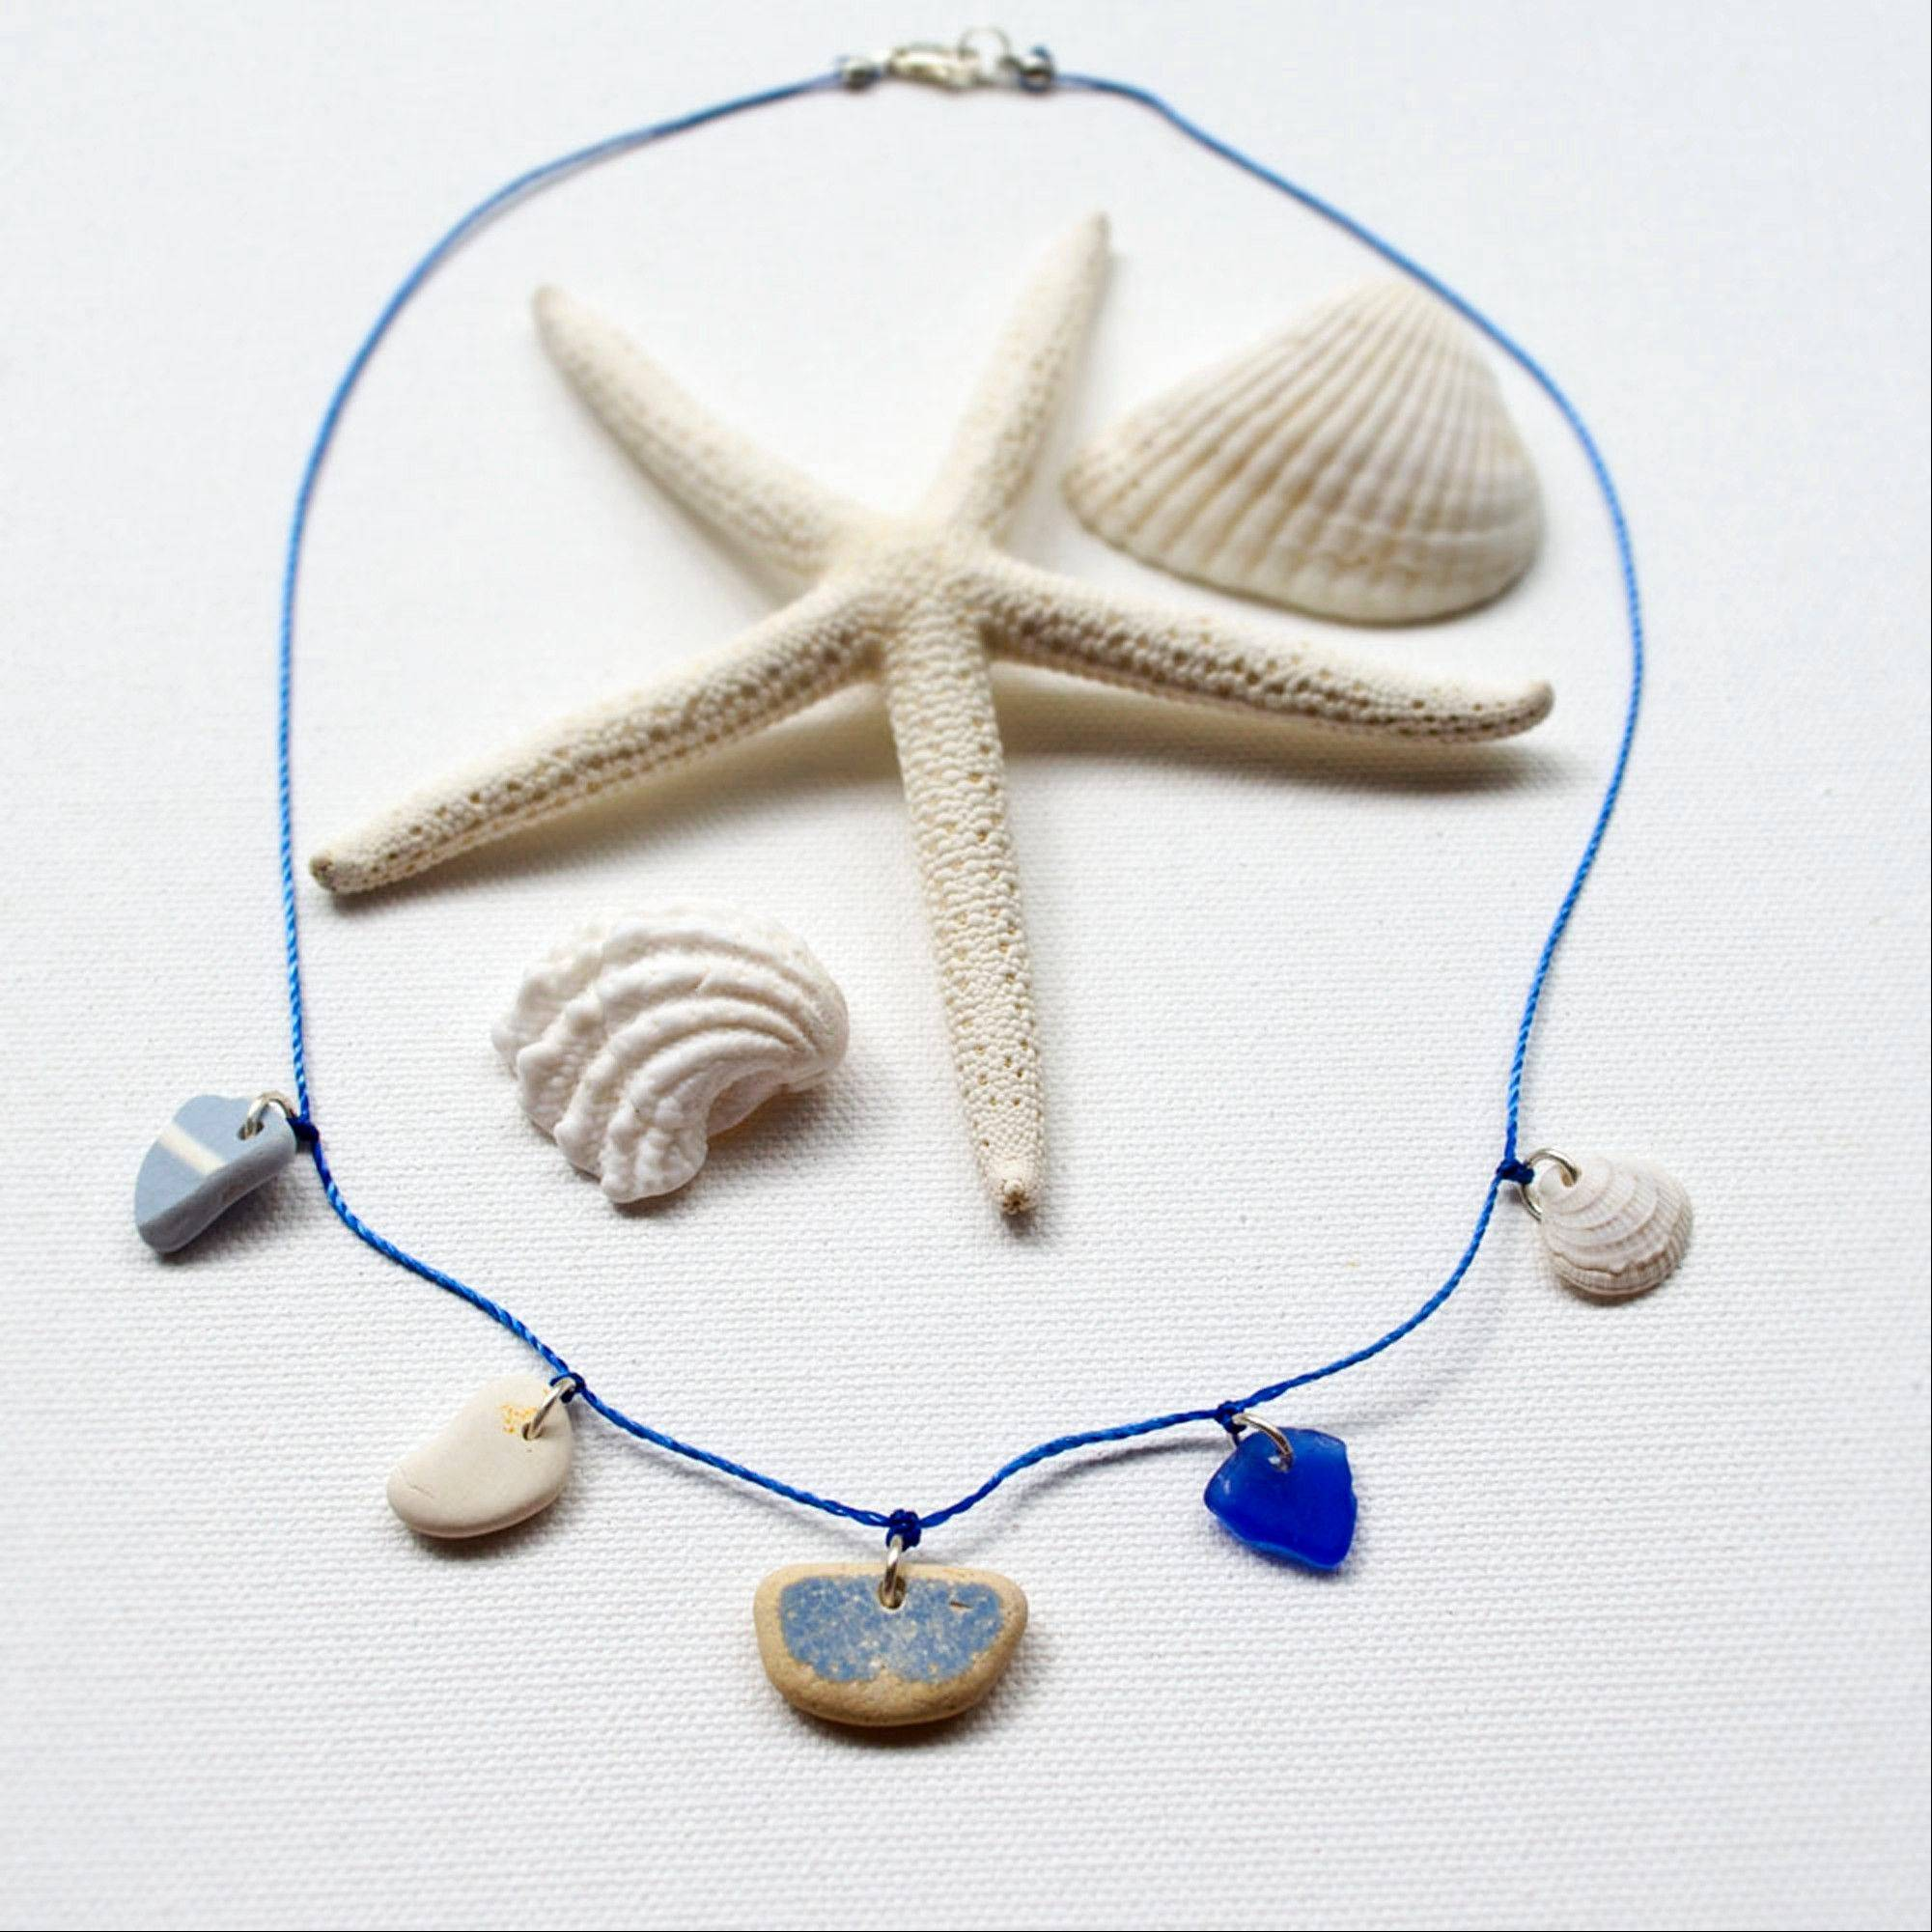 Karen Vesk of Erie, Penn., hunts for beach glass and pottery shards at the Lake Erie shoreline for pieces for a necklace that incorporates blue beach glass, a small shell and several shards of beach pottery.